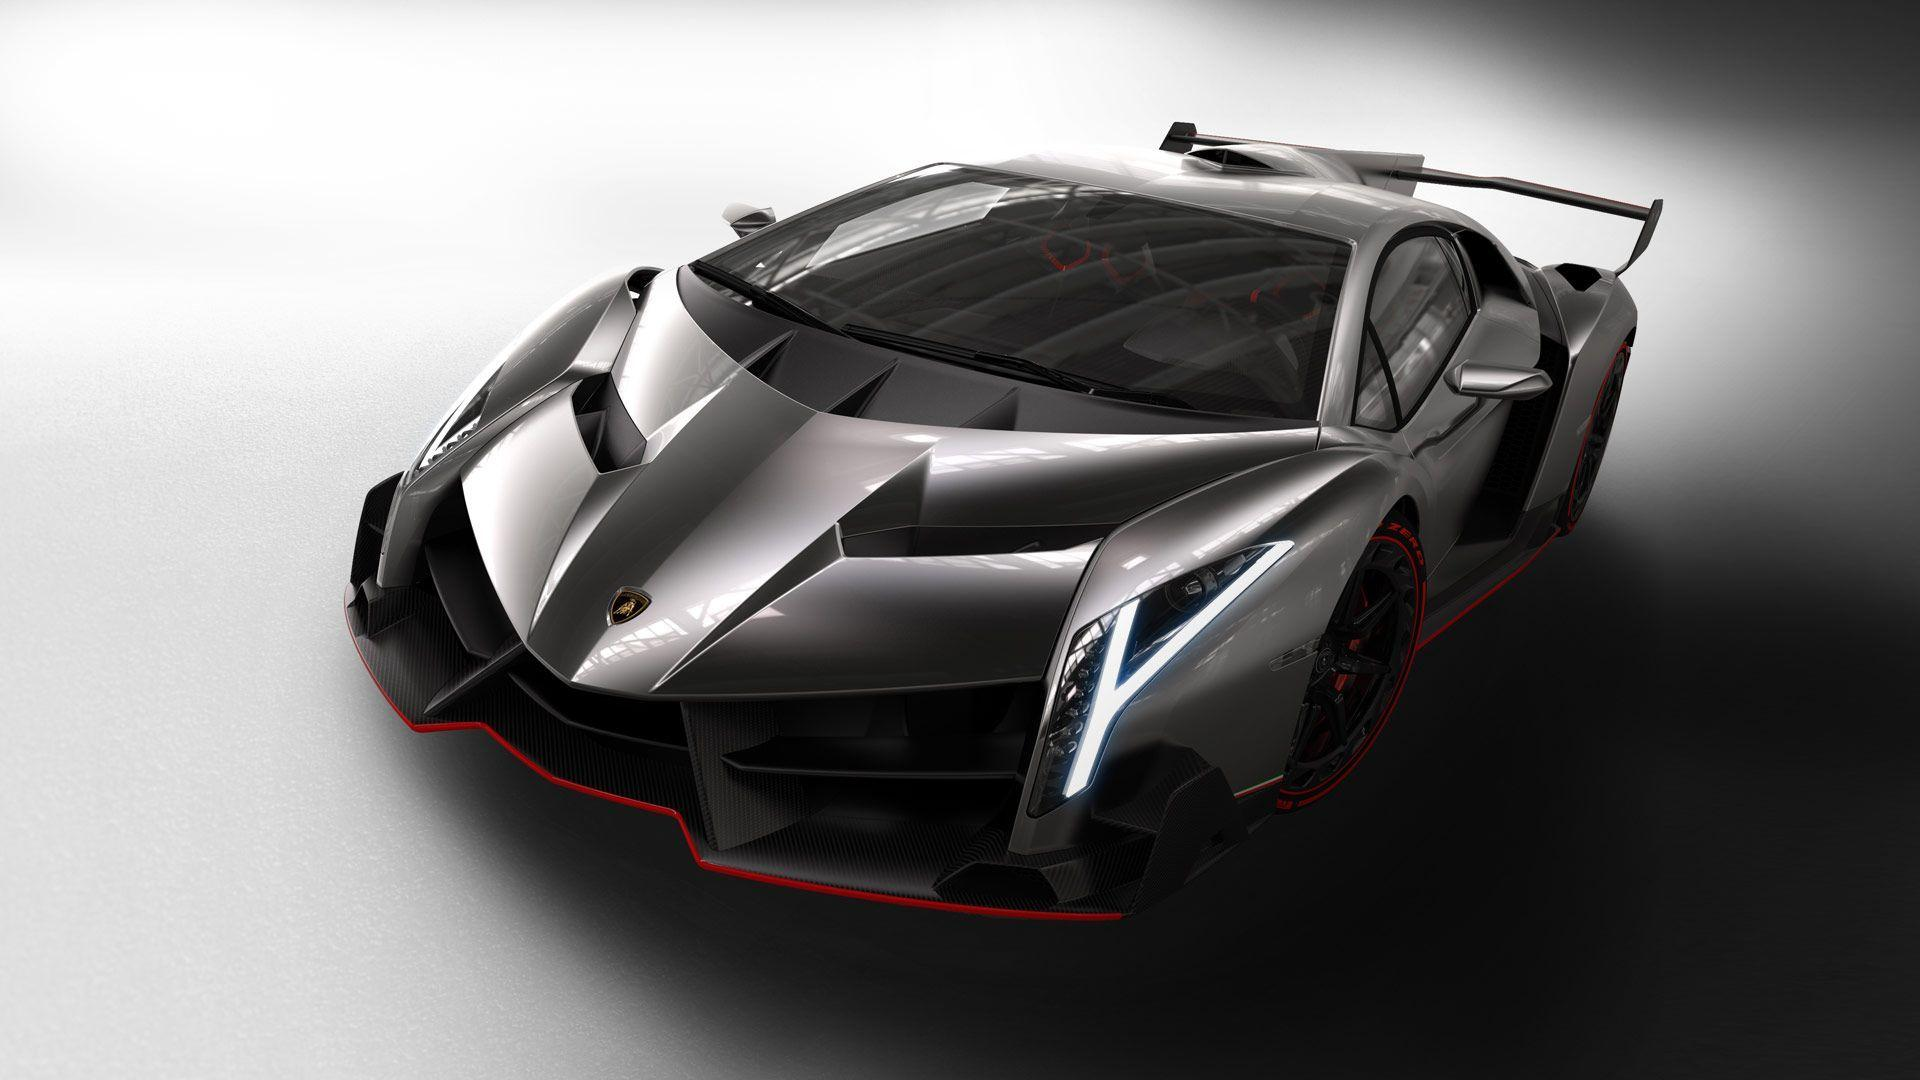 Beautiful Car Wallpapers Lamborghini   Cars Wallpapers (8309) Ilikewalls.